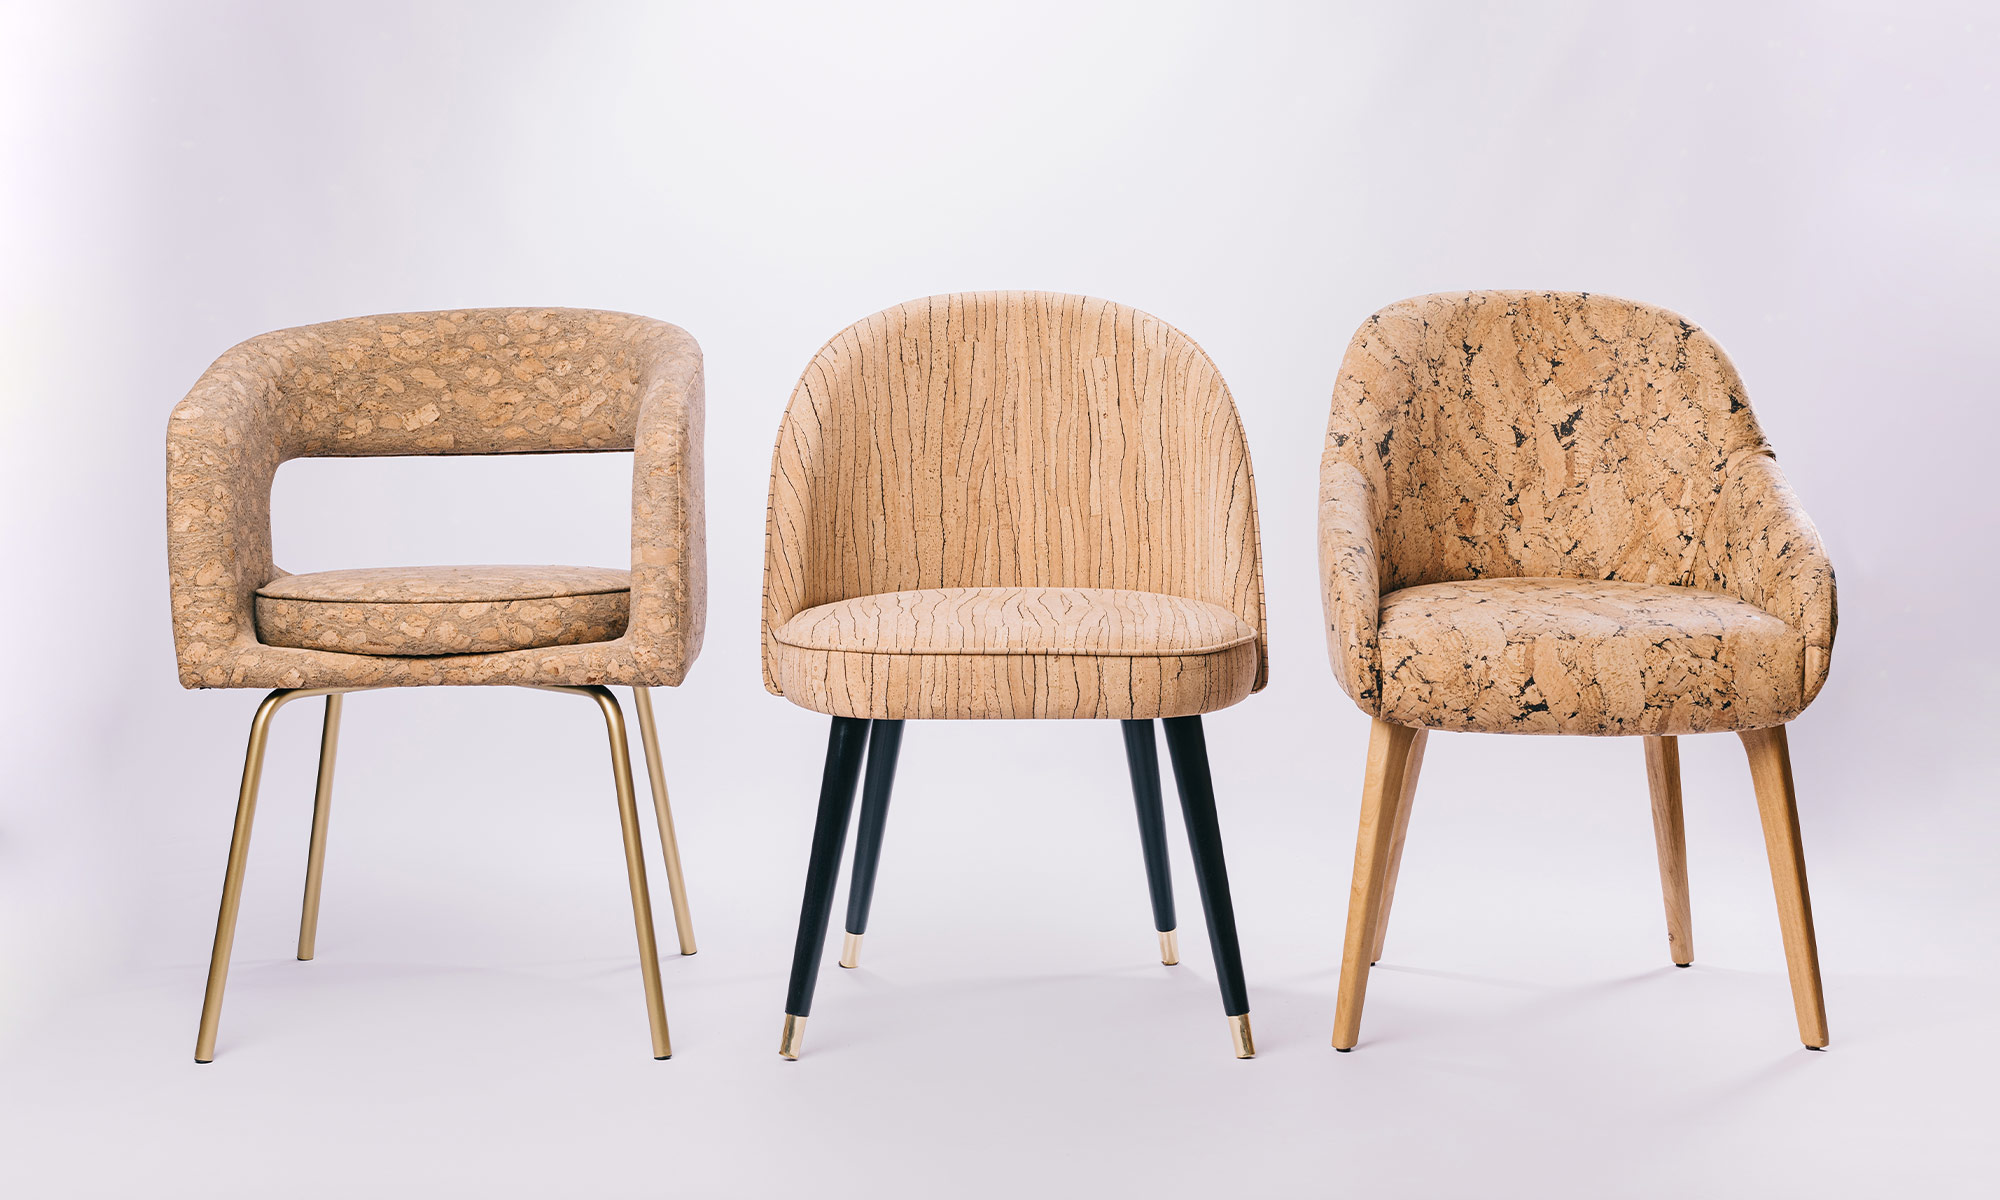 creative cork chairs